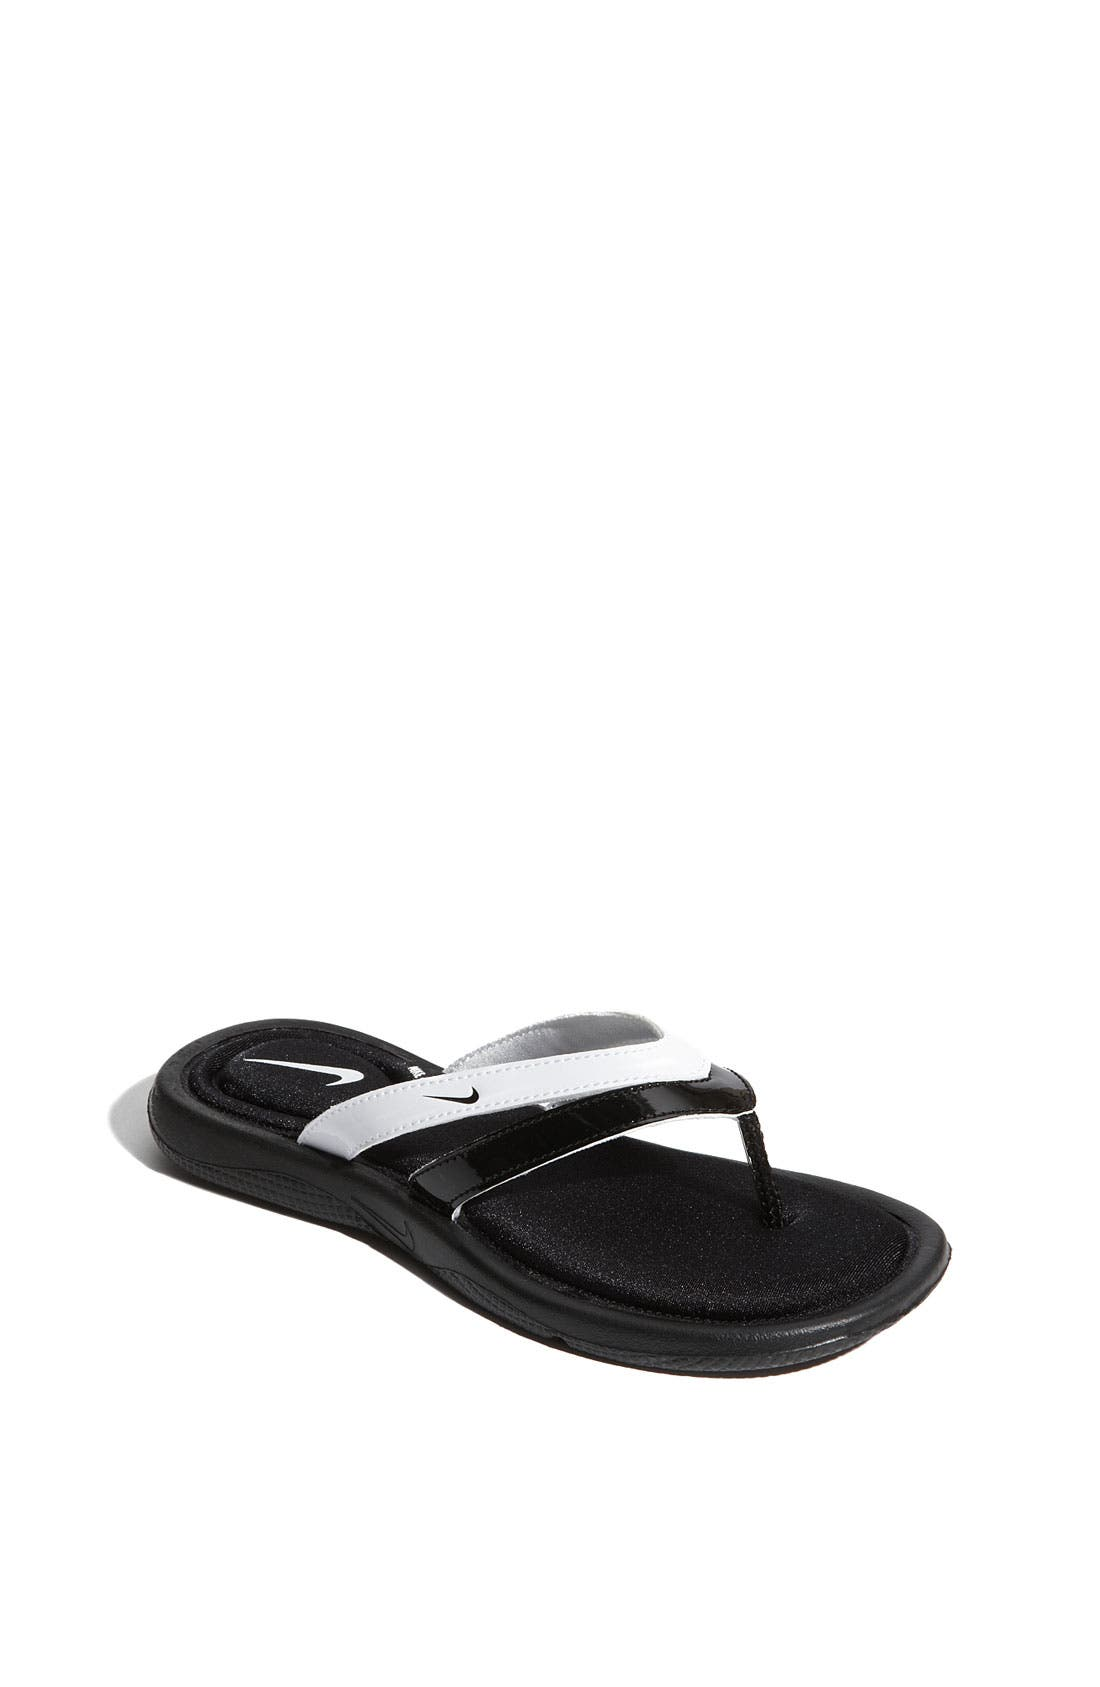 Alternate Image 1 Selected - Nike 'Comfort' Thong Sandal (Toddler, Little Kid & Big Kid)